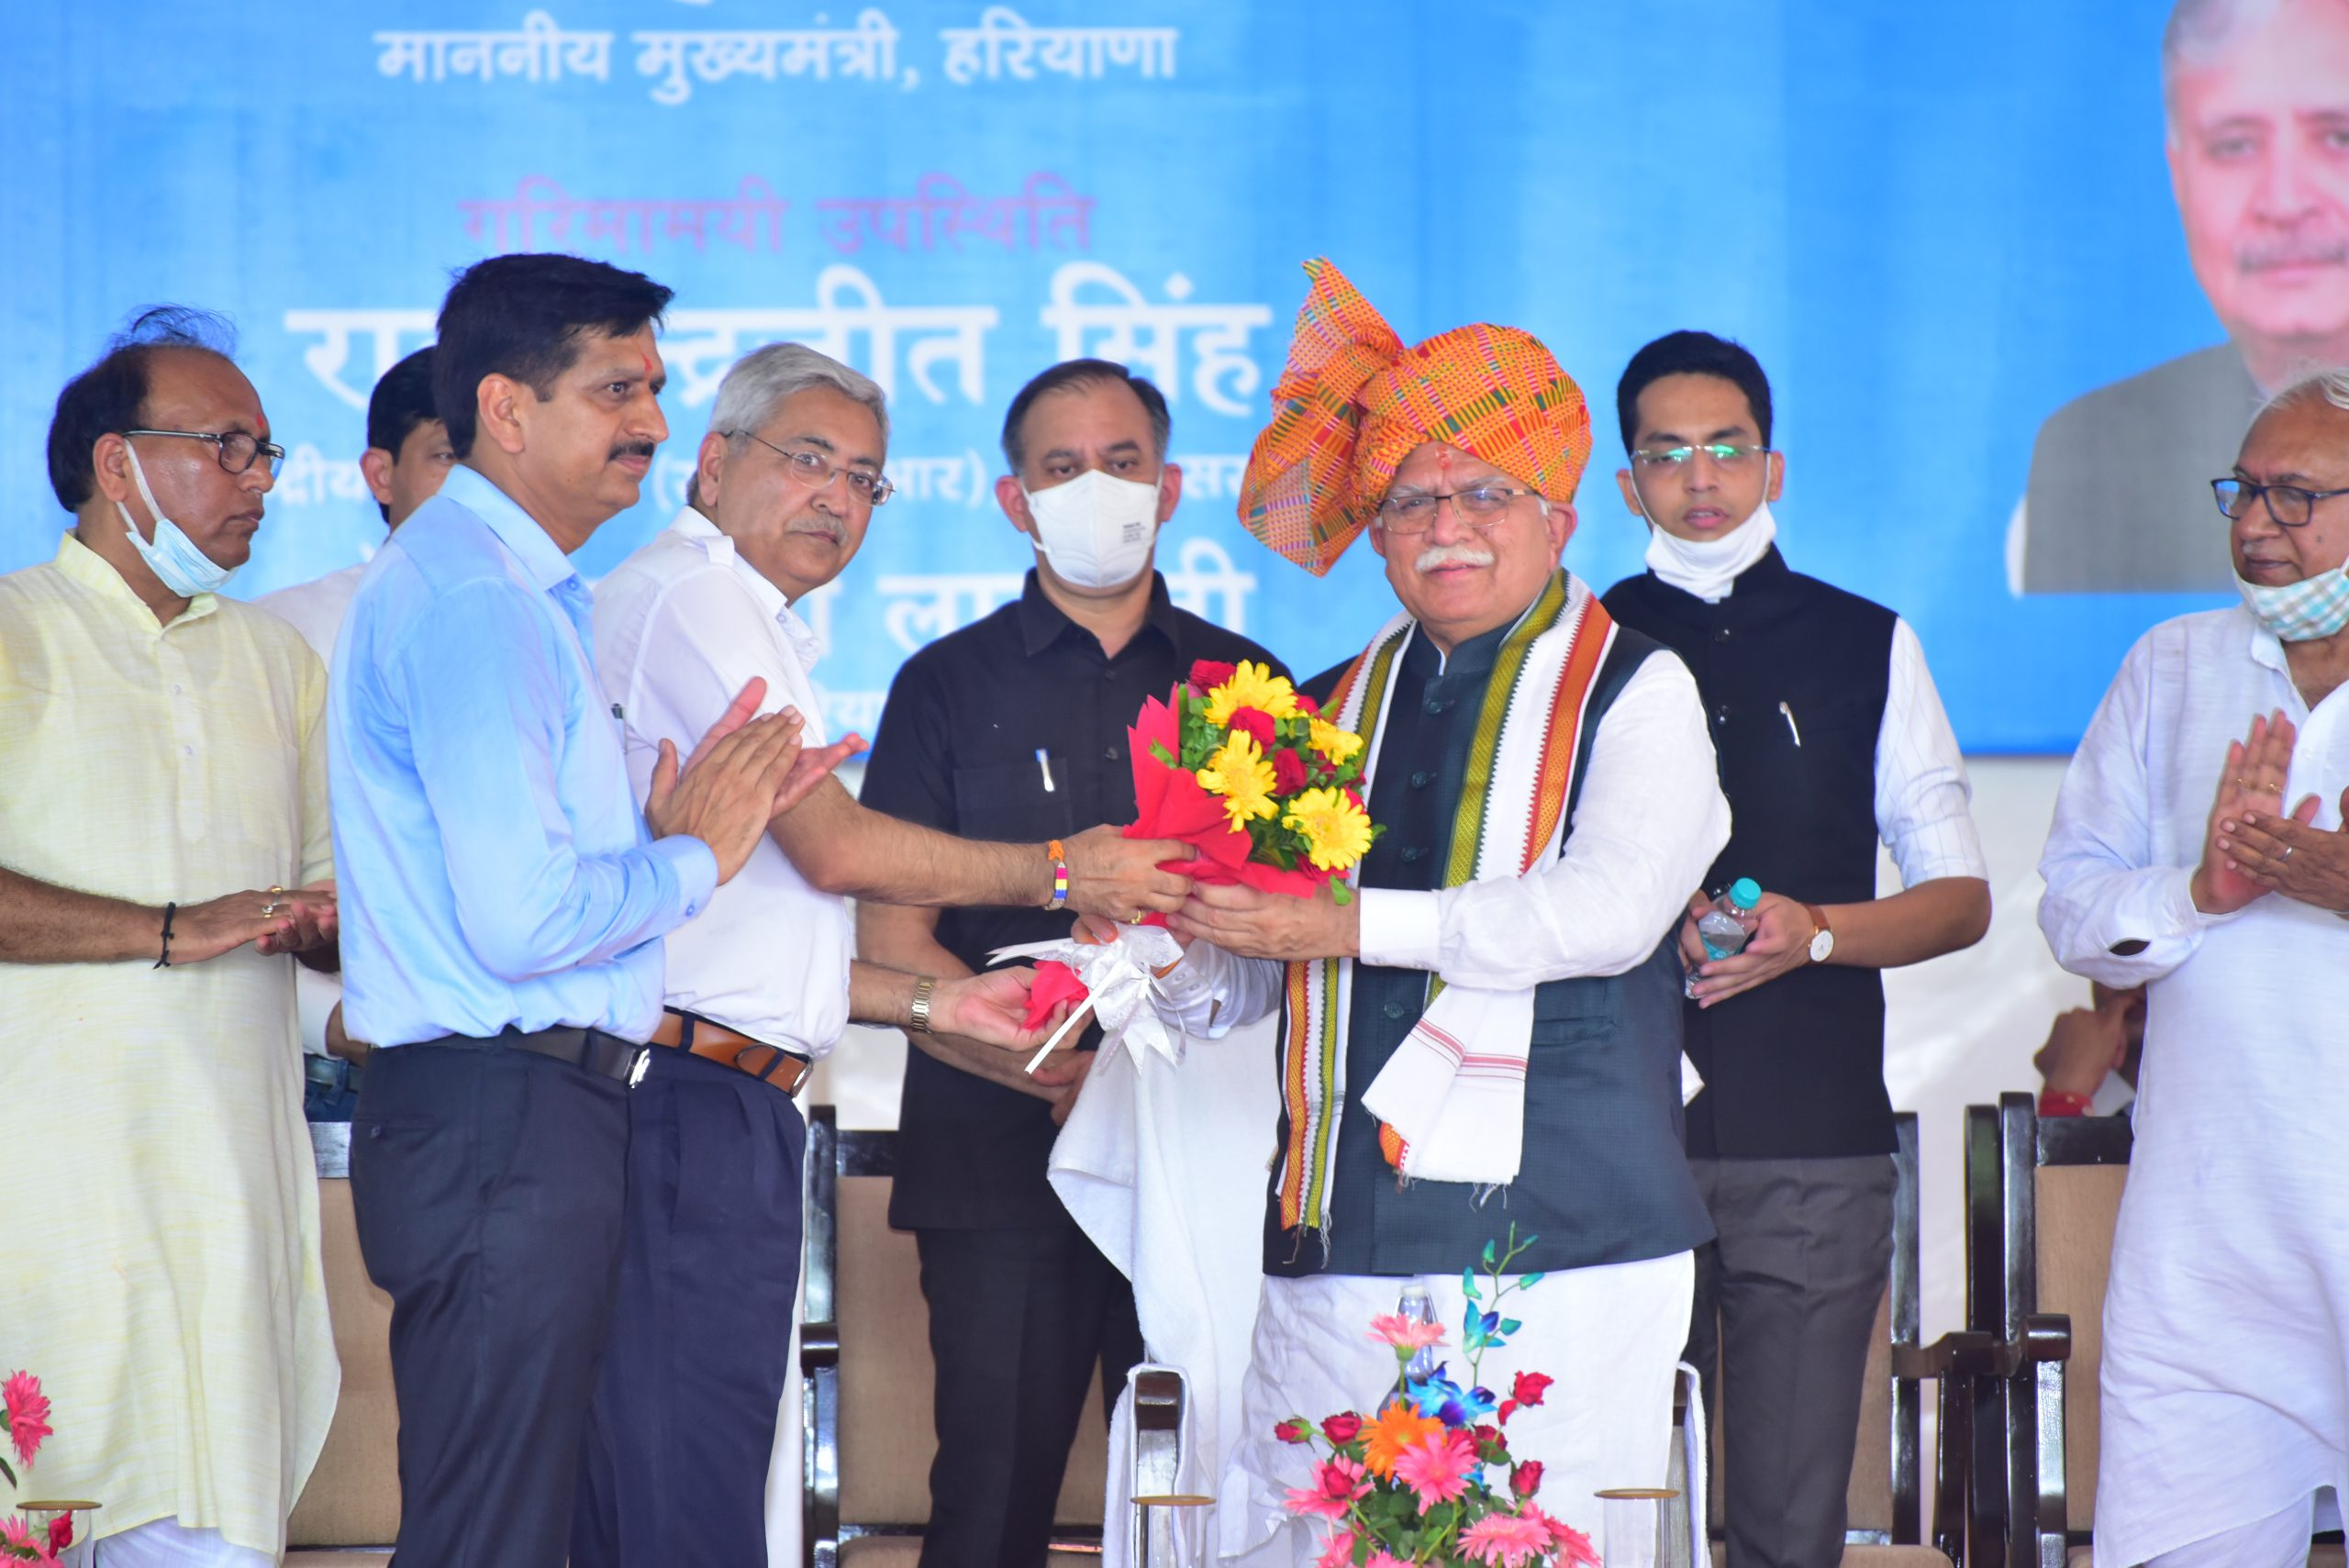 Hon'ble CM Welcomed by Vice-Chancellor of the University